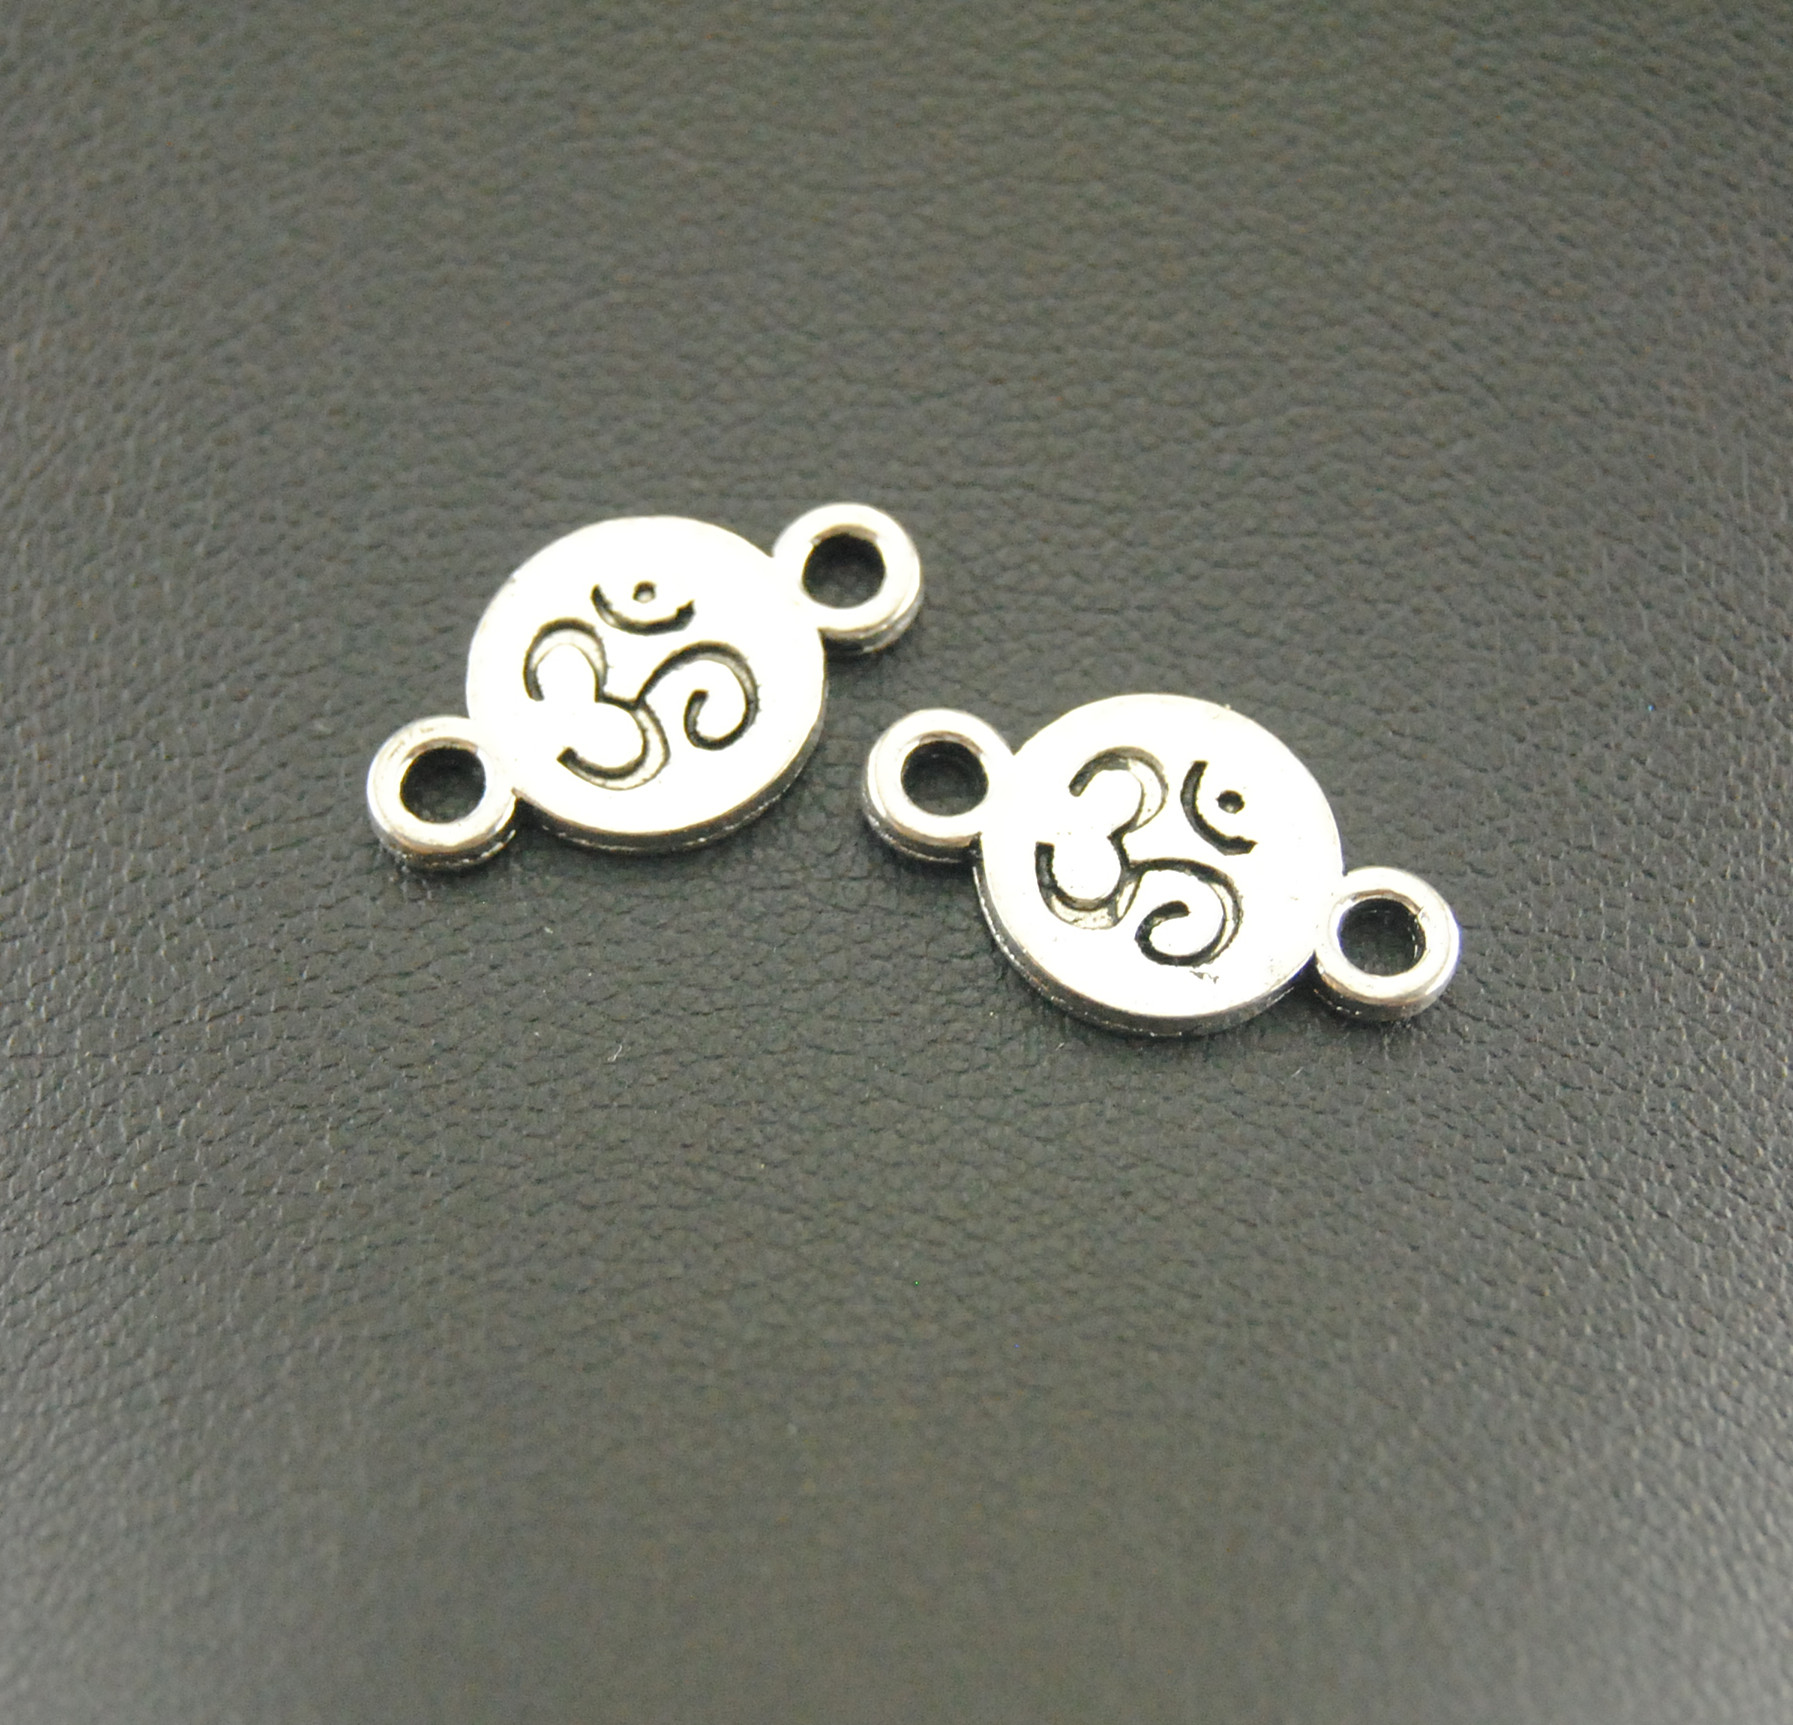 Free Shipping! 20 Pcs Antique Silver OM Aum Ohm Mantra Sign Disc Charm Handmade Charms Pendants Jewelry Findings A910